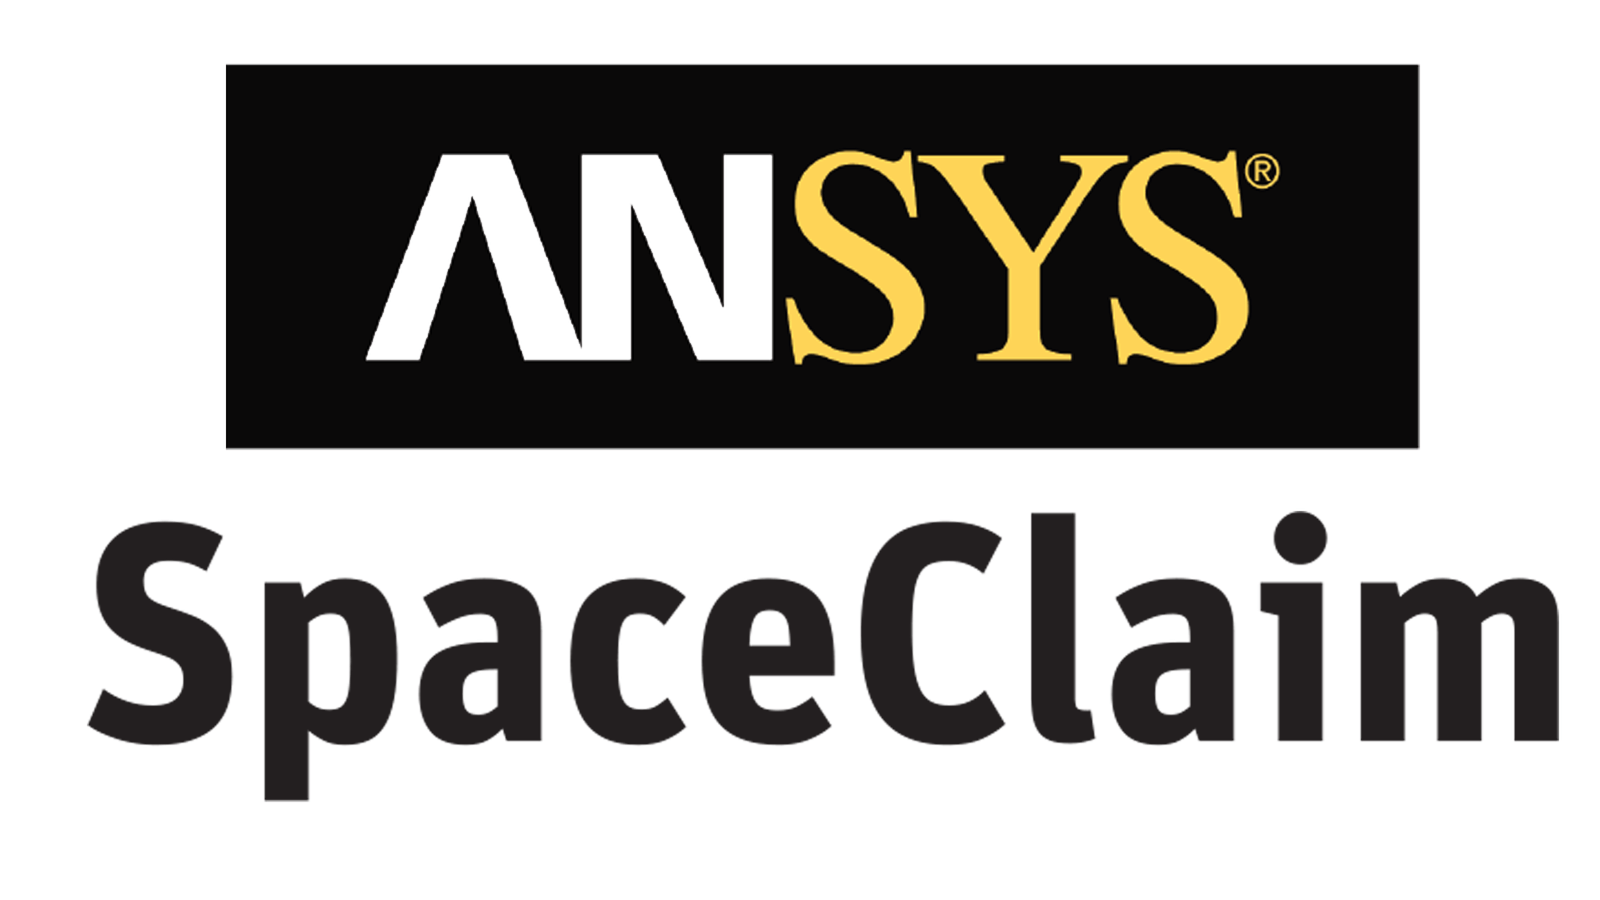 ANSYS - SPACECLAIM